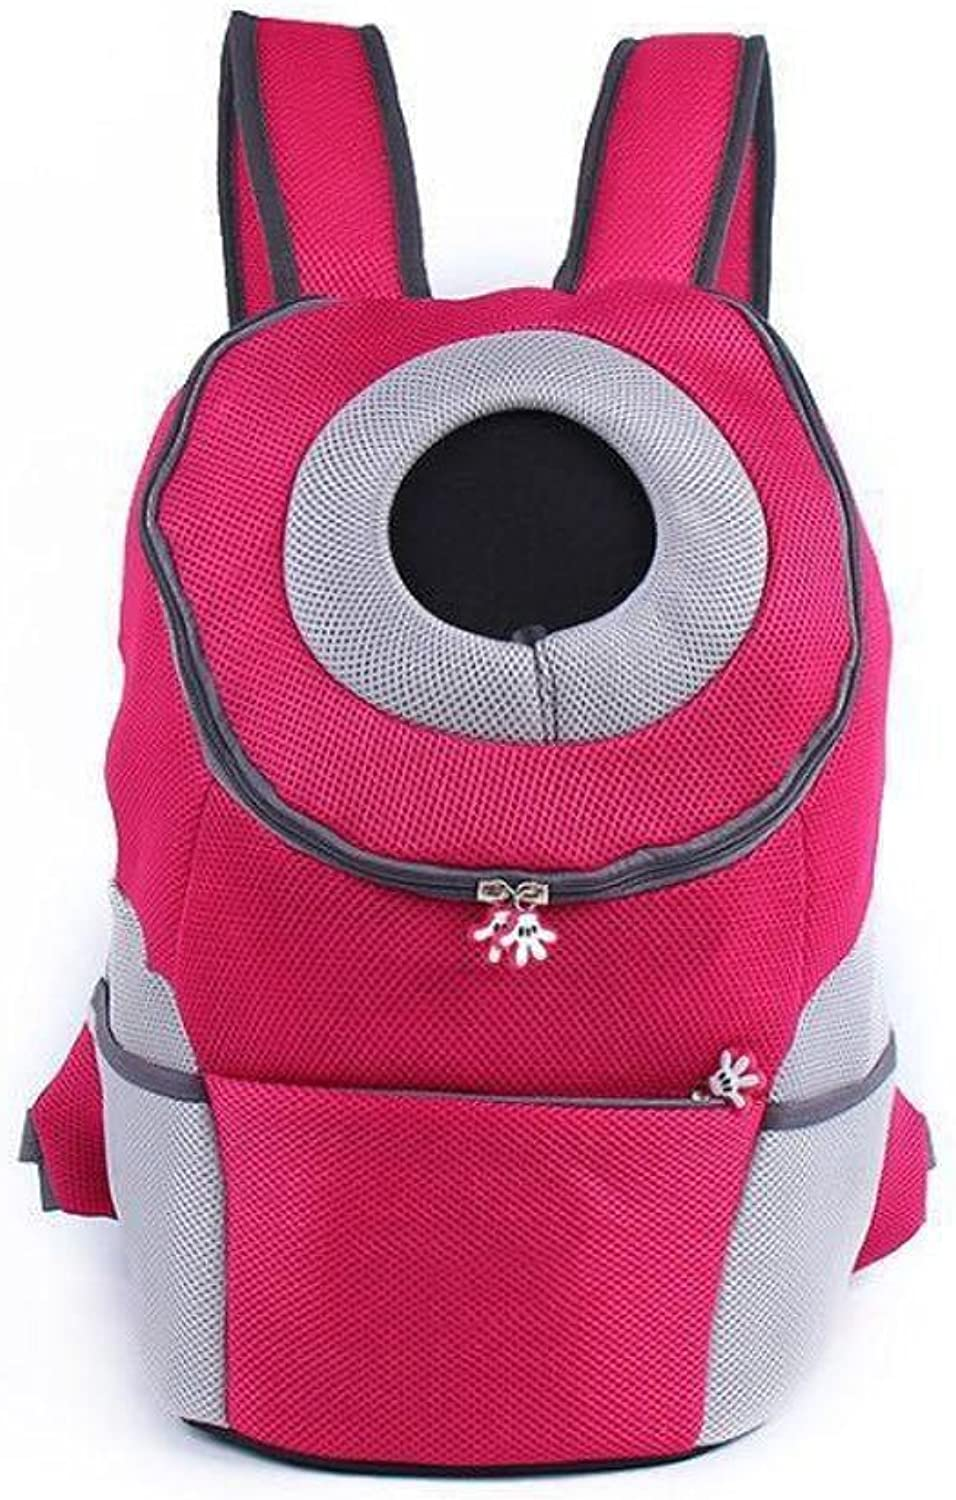 Dixinla Pet Carrier Backpack Outgoing double shoulder bag chest backpack out of pocket oxford cloth